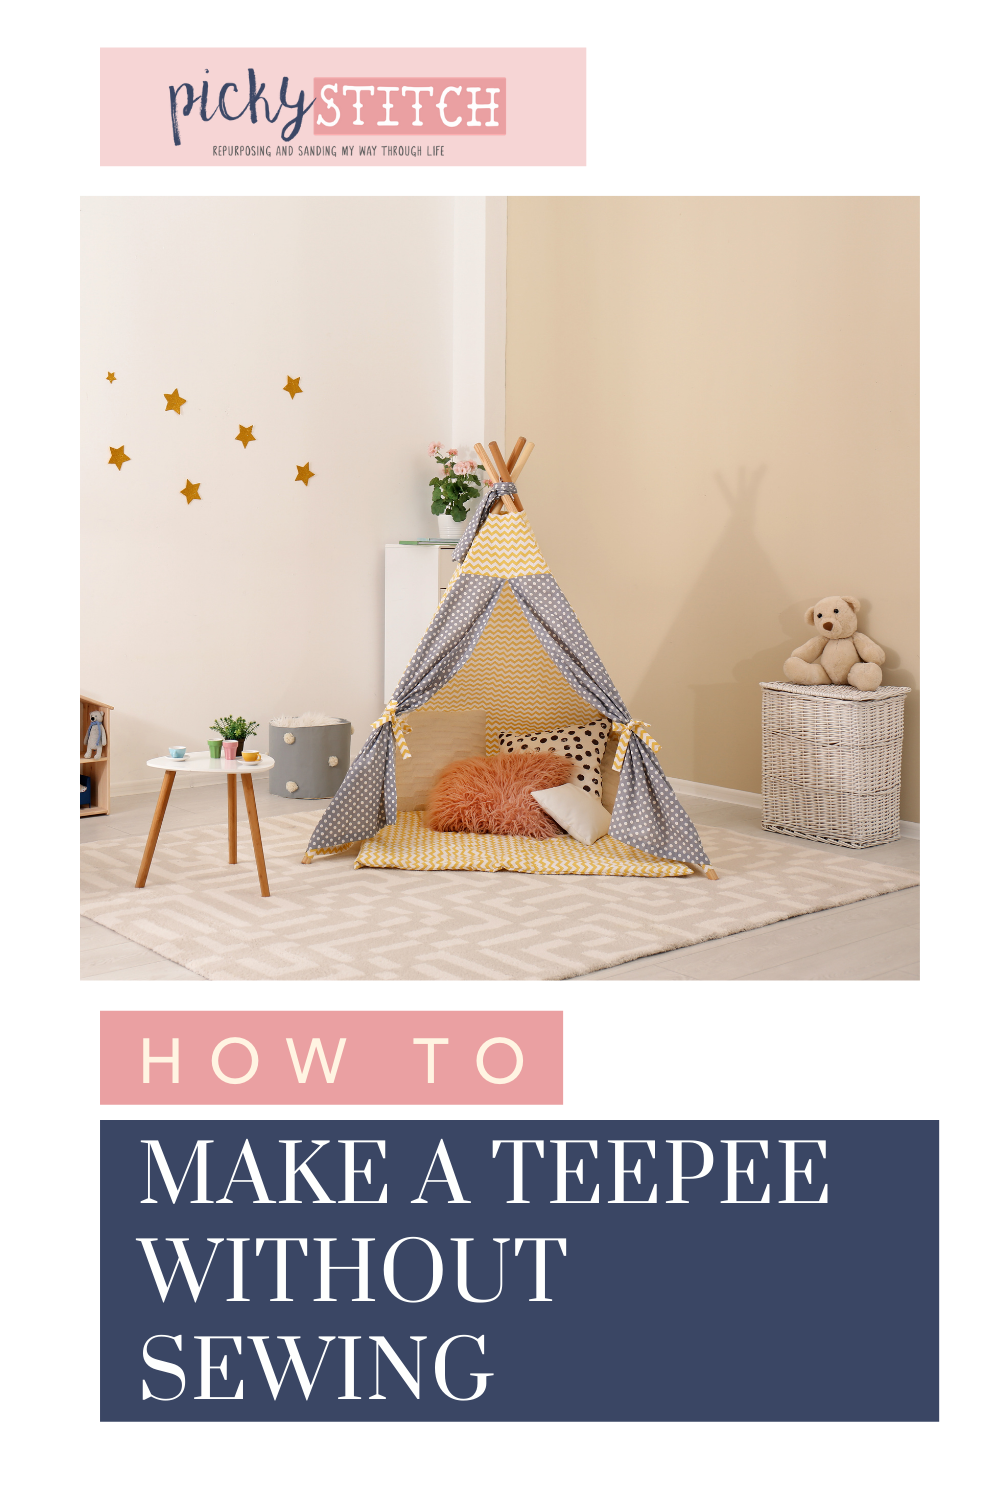 Pickystitch.com has all the best DIY project ideas! Find fun activities that you can do even as a beginner. Check out these awesome no sew teepees you can make at home for your kids!